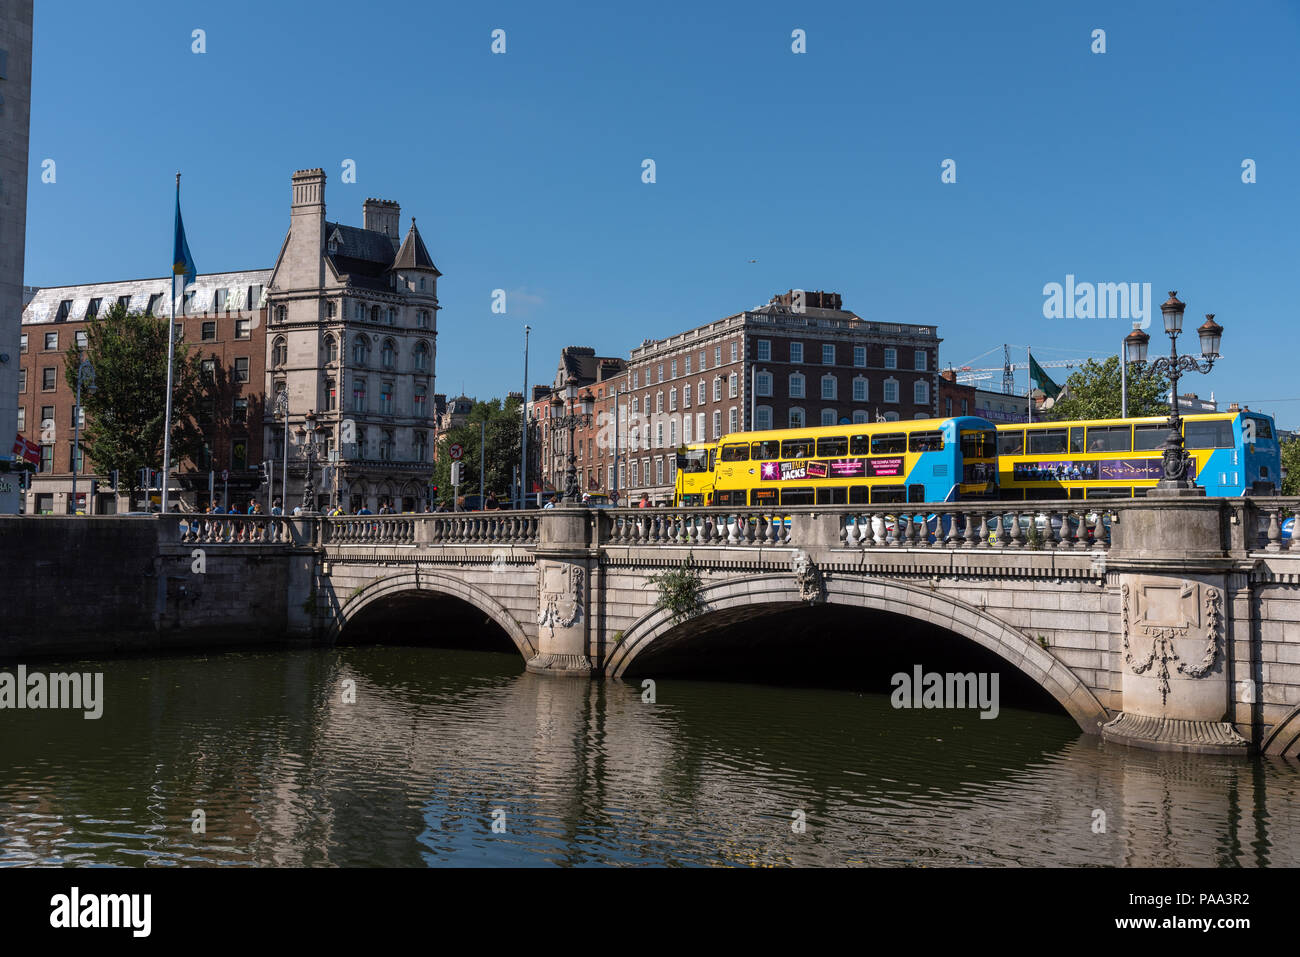 Tour busses cross a bridge over the River Liffey on a summer morning. - Stock Image